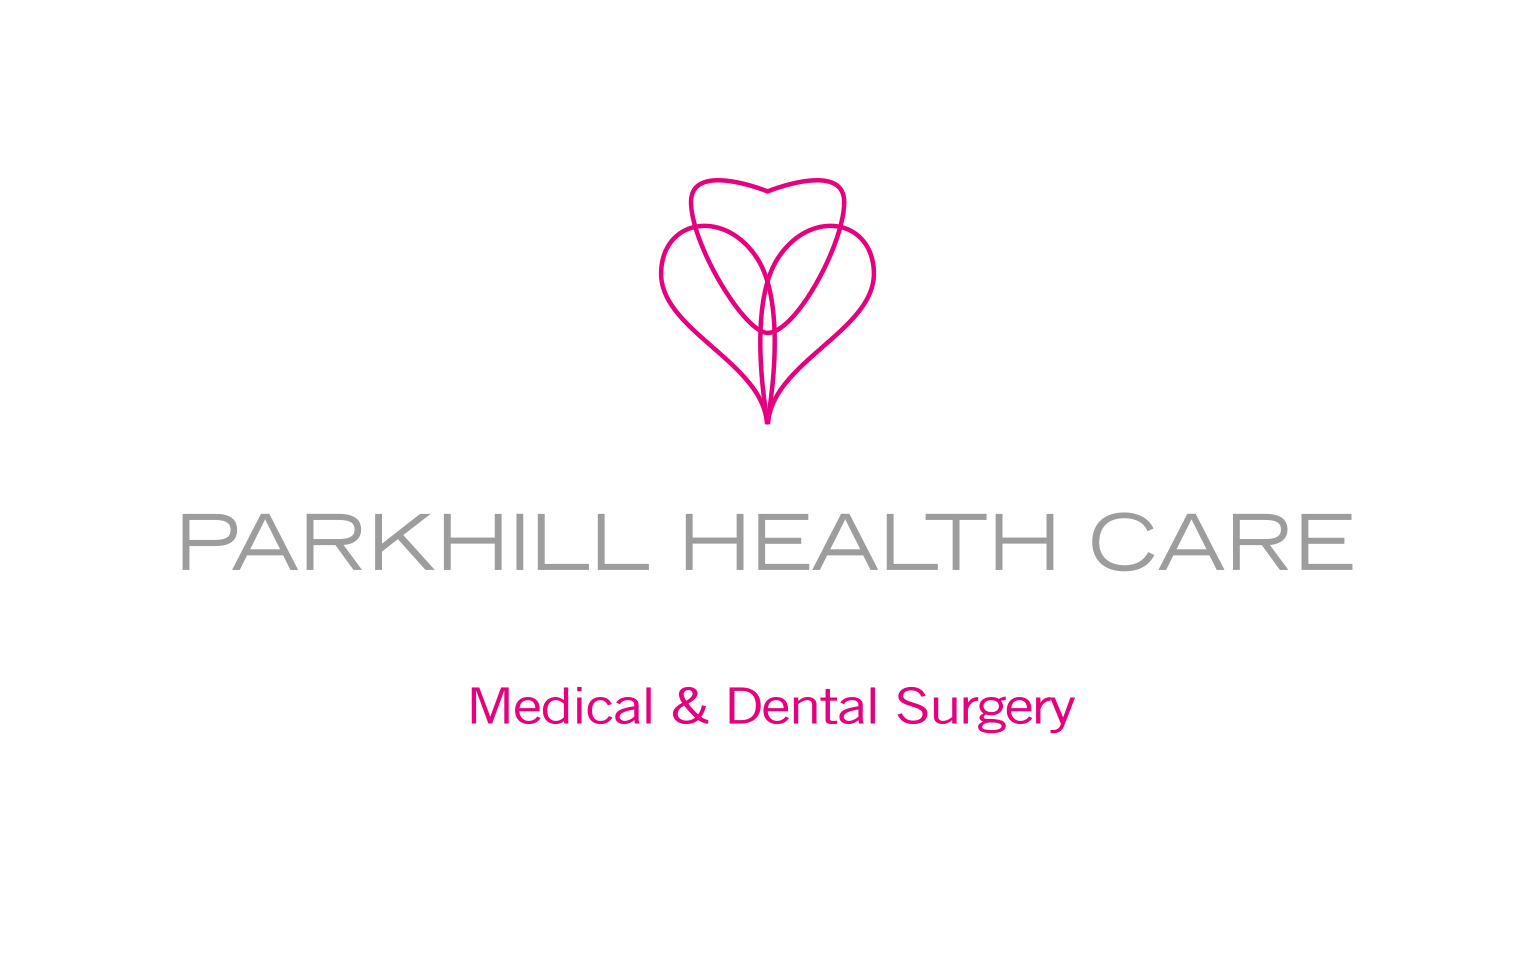 Parkhill Health Care